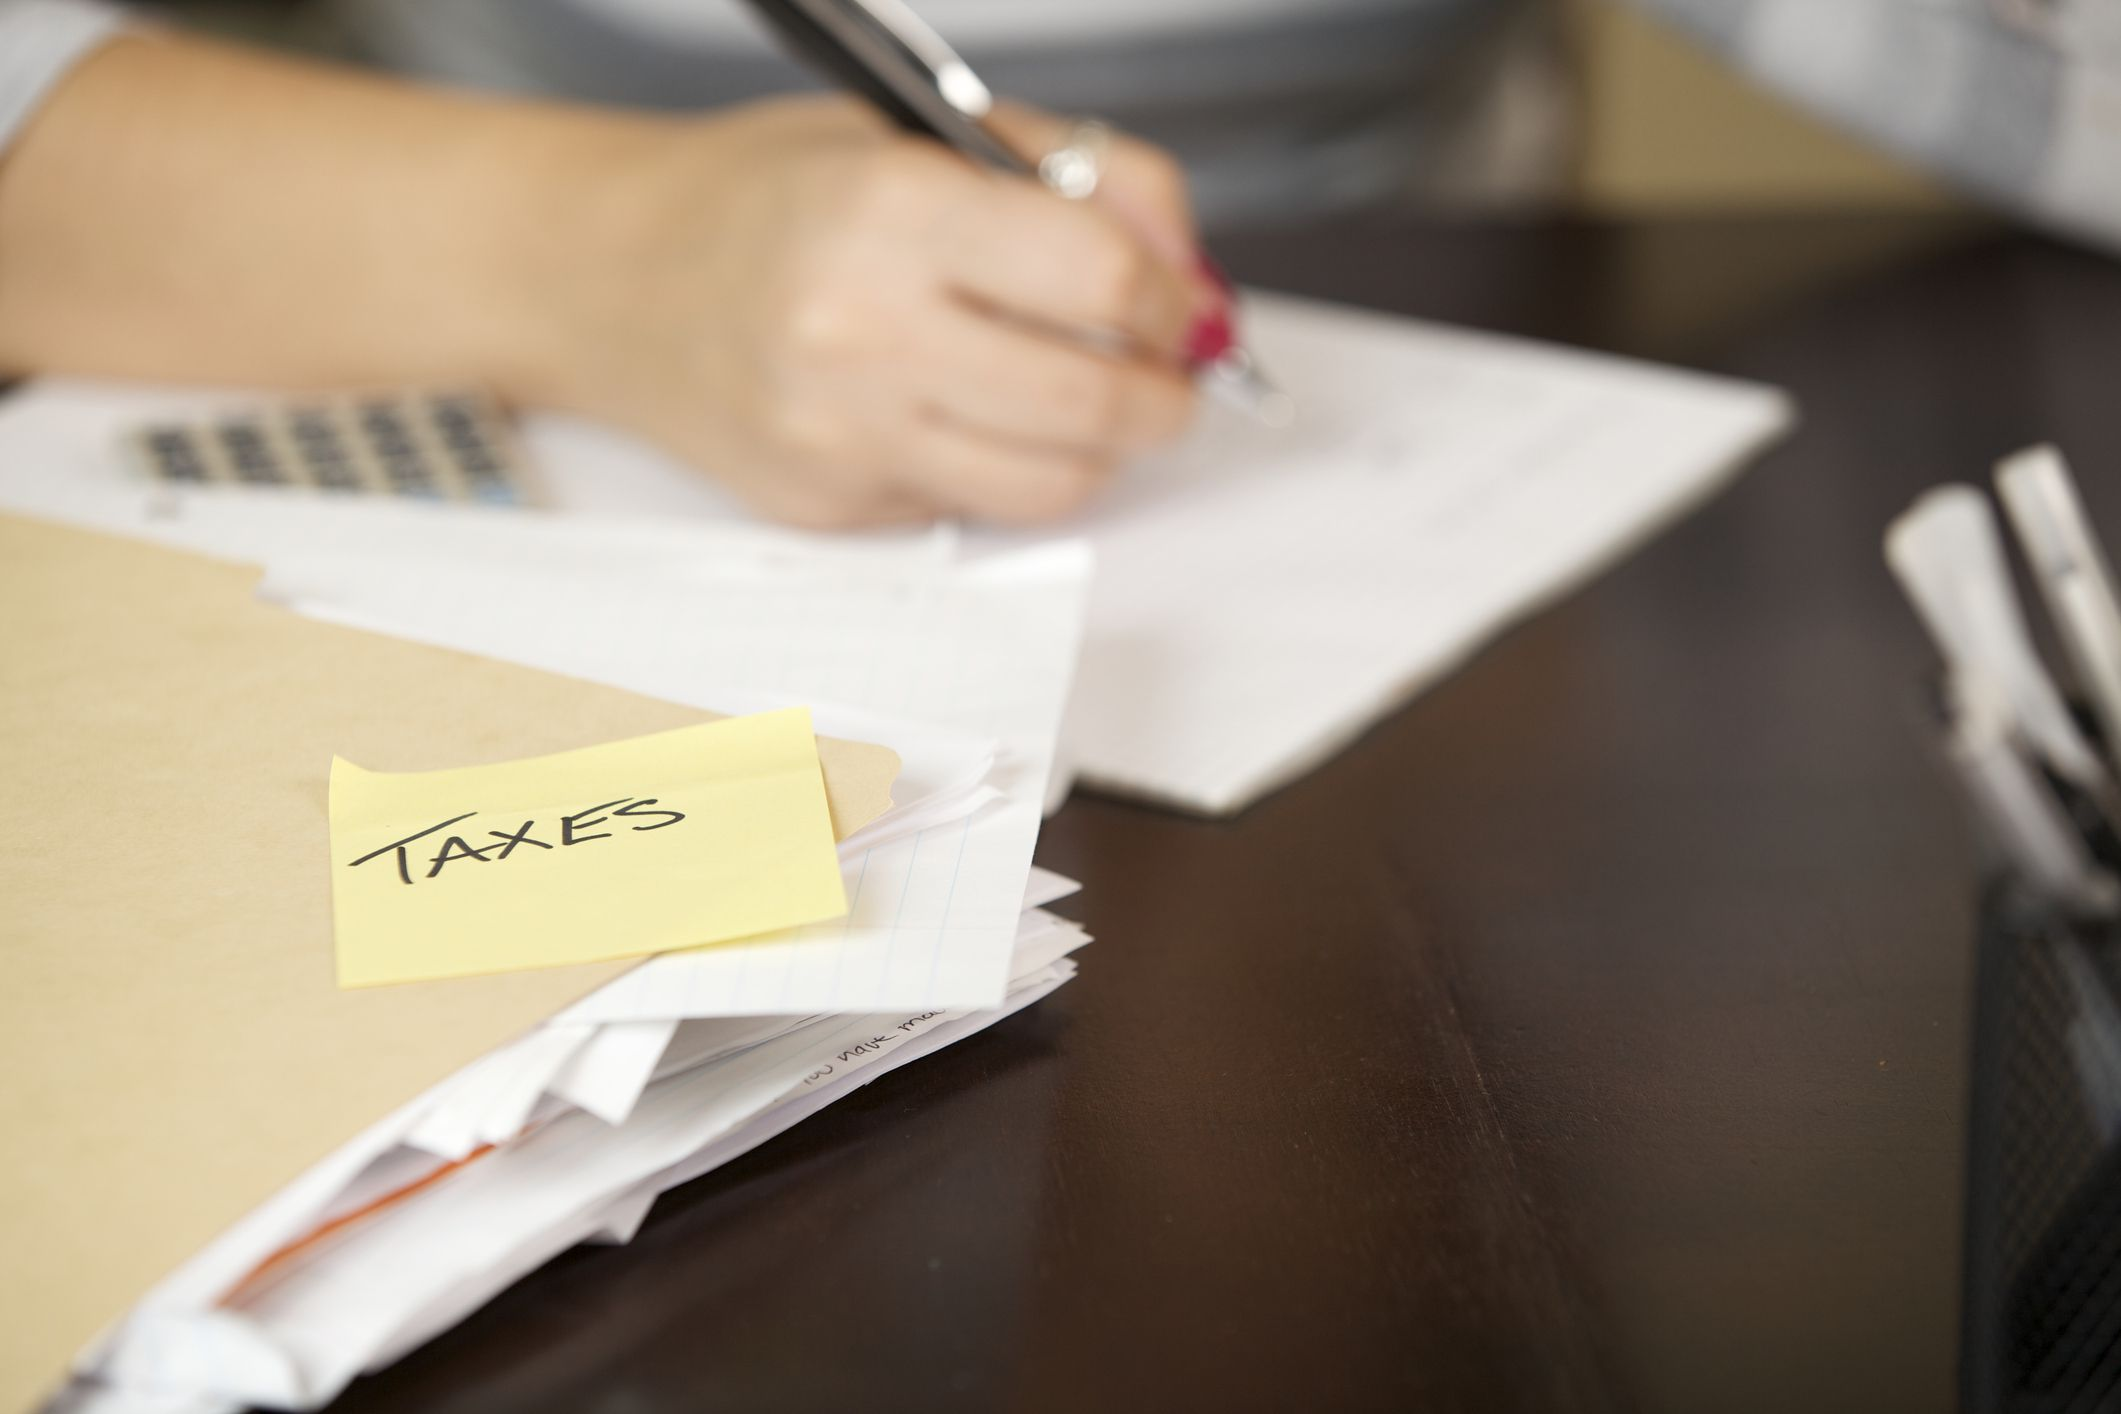 Does the New Tax Law Make the Charitable Deduction Less Worthwhile?